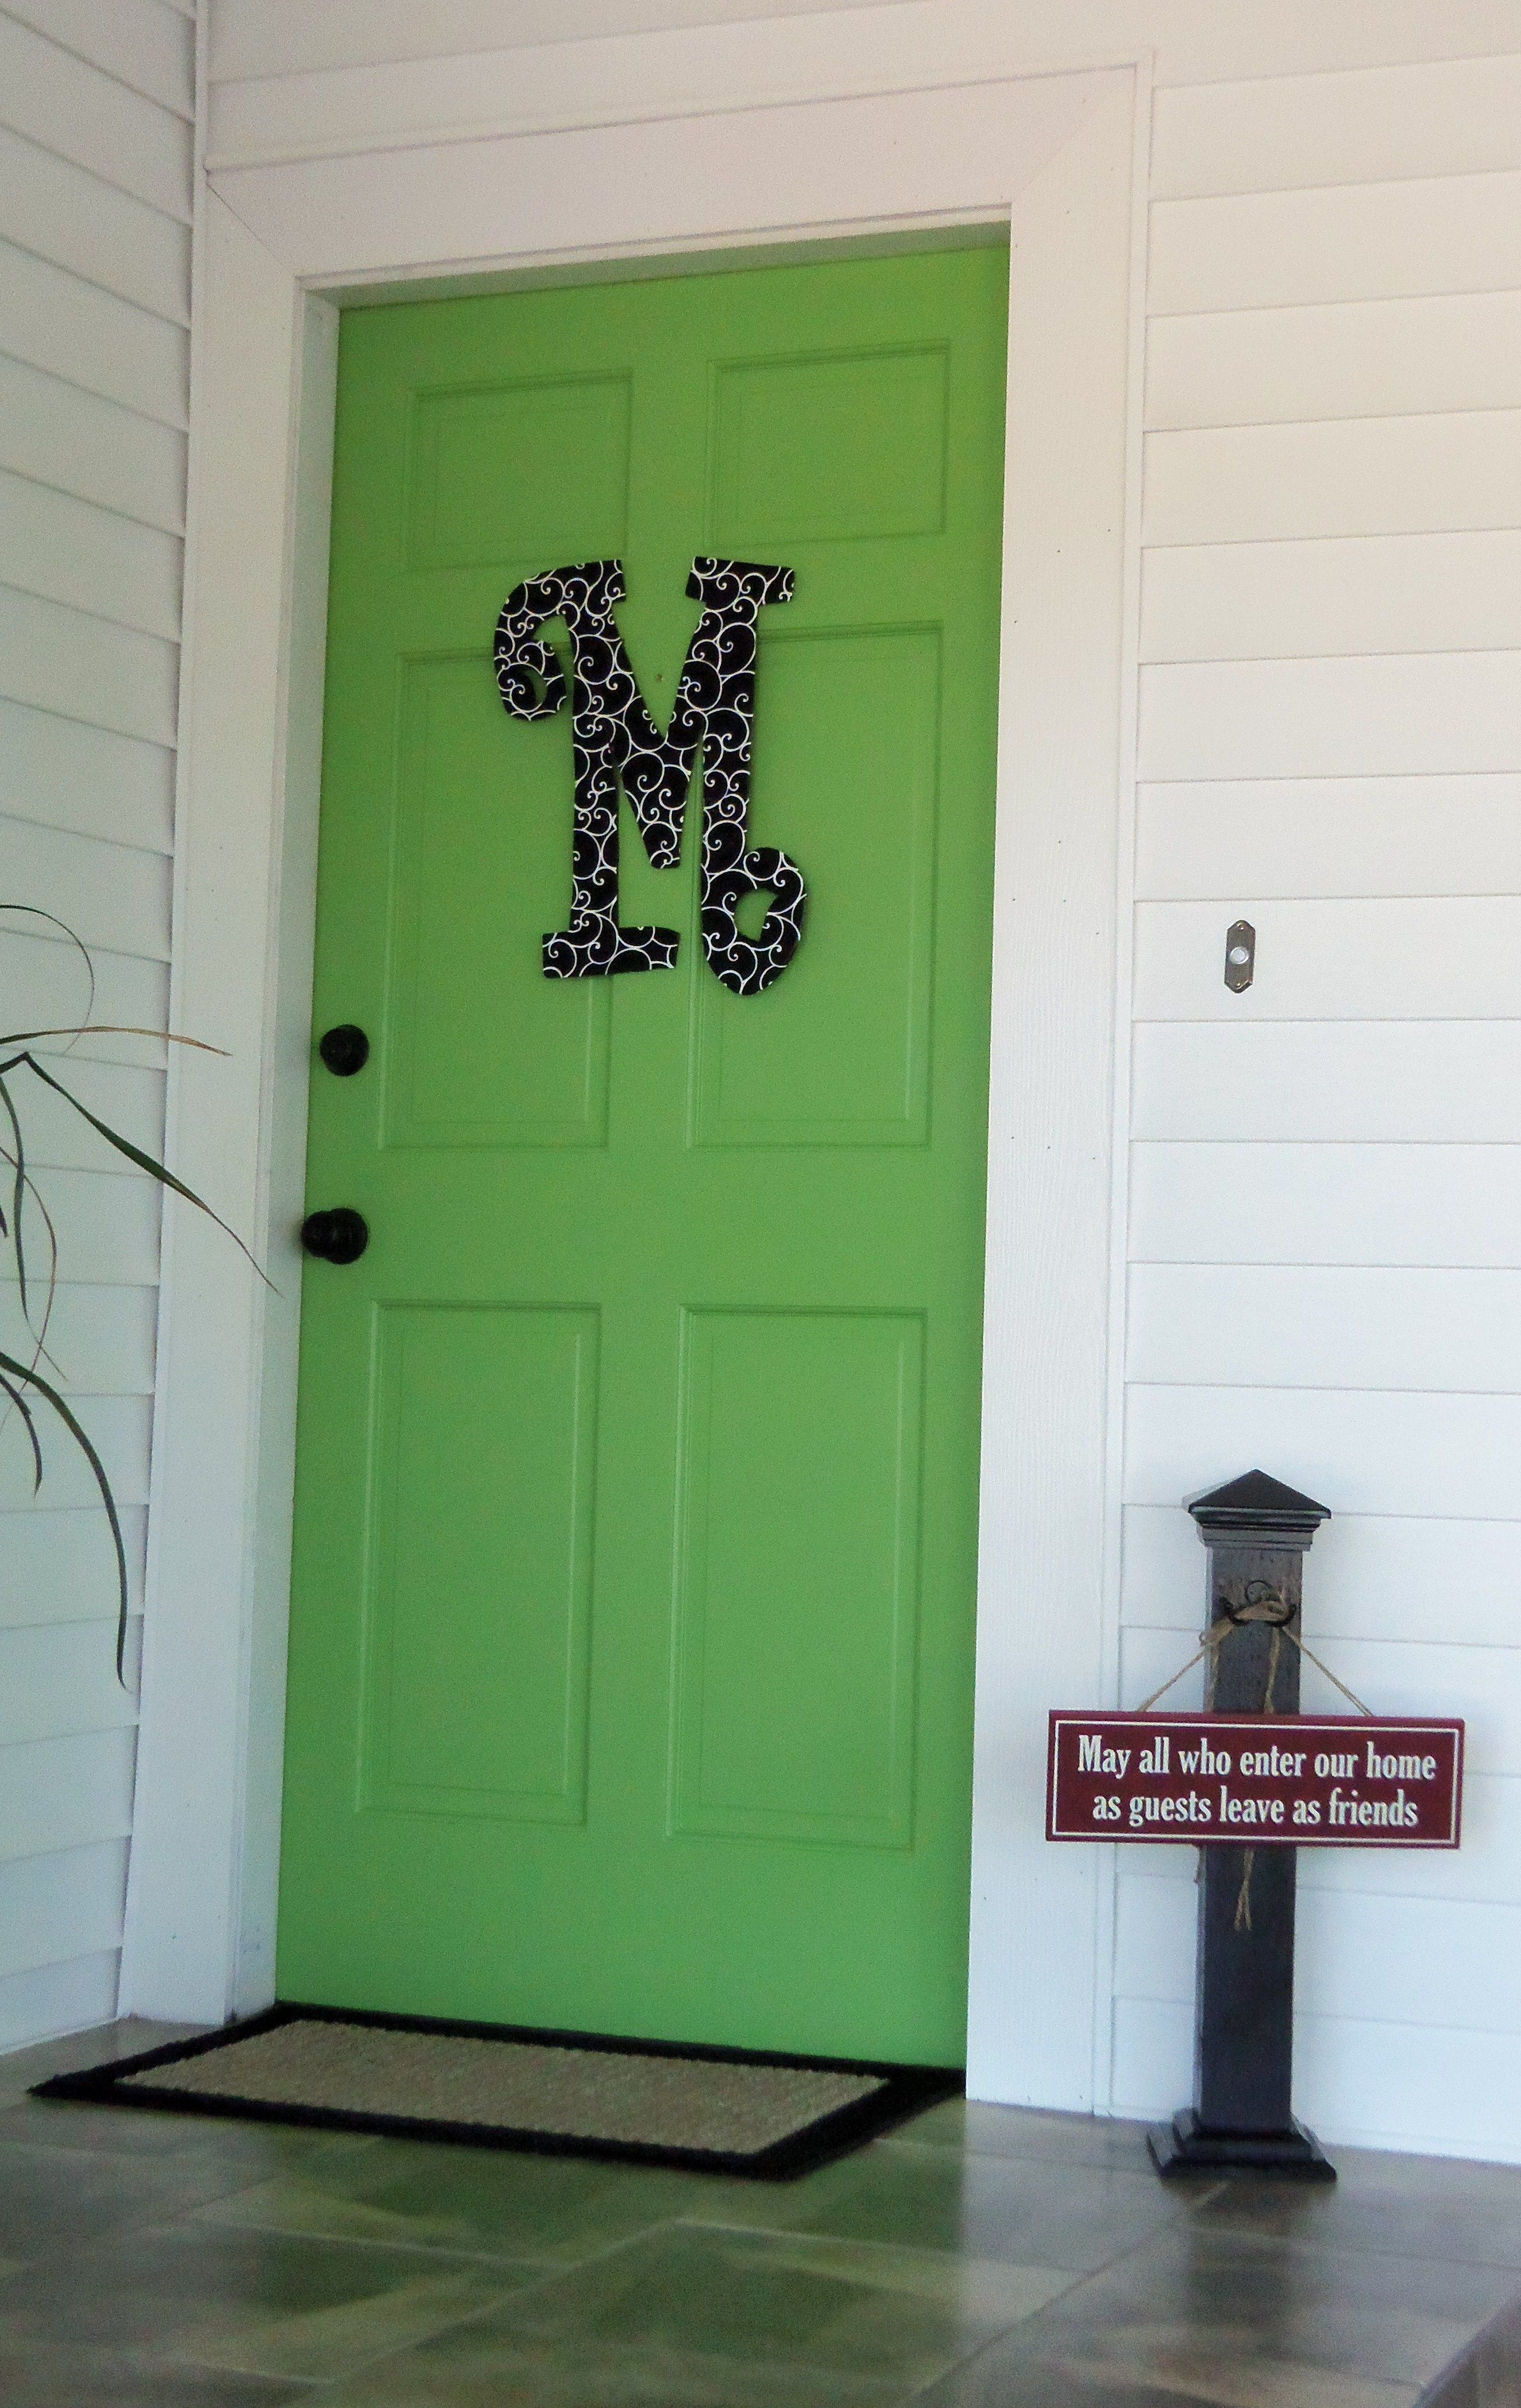 My limealicious door o Doors & Door Decor Pinterest